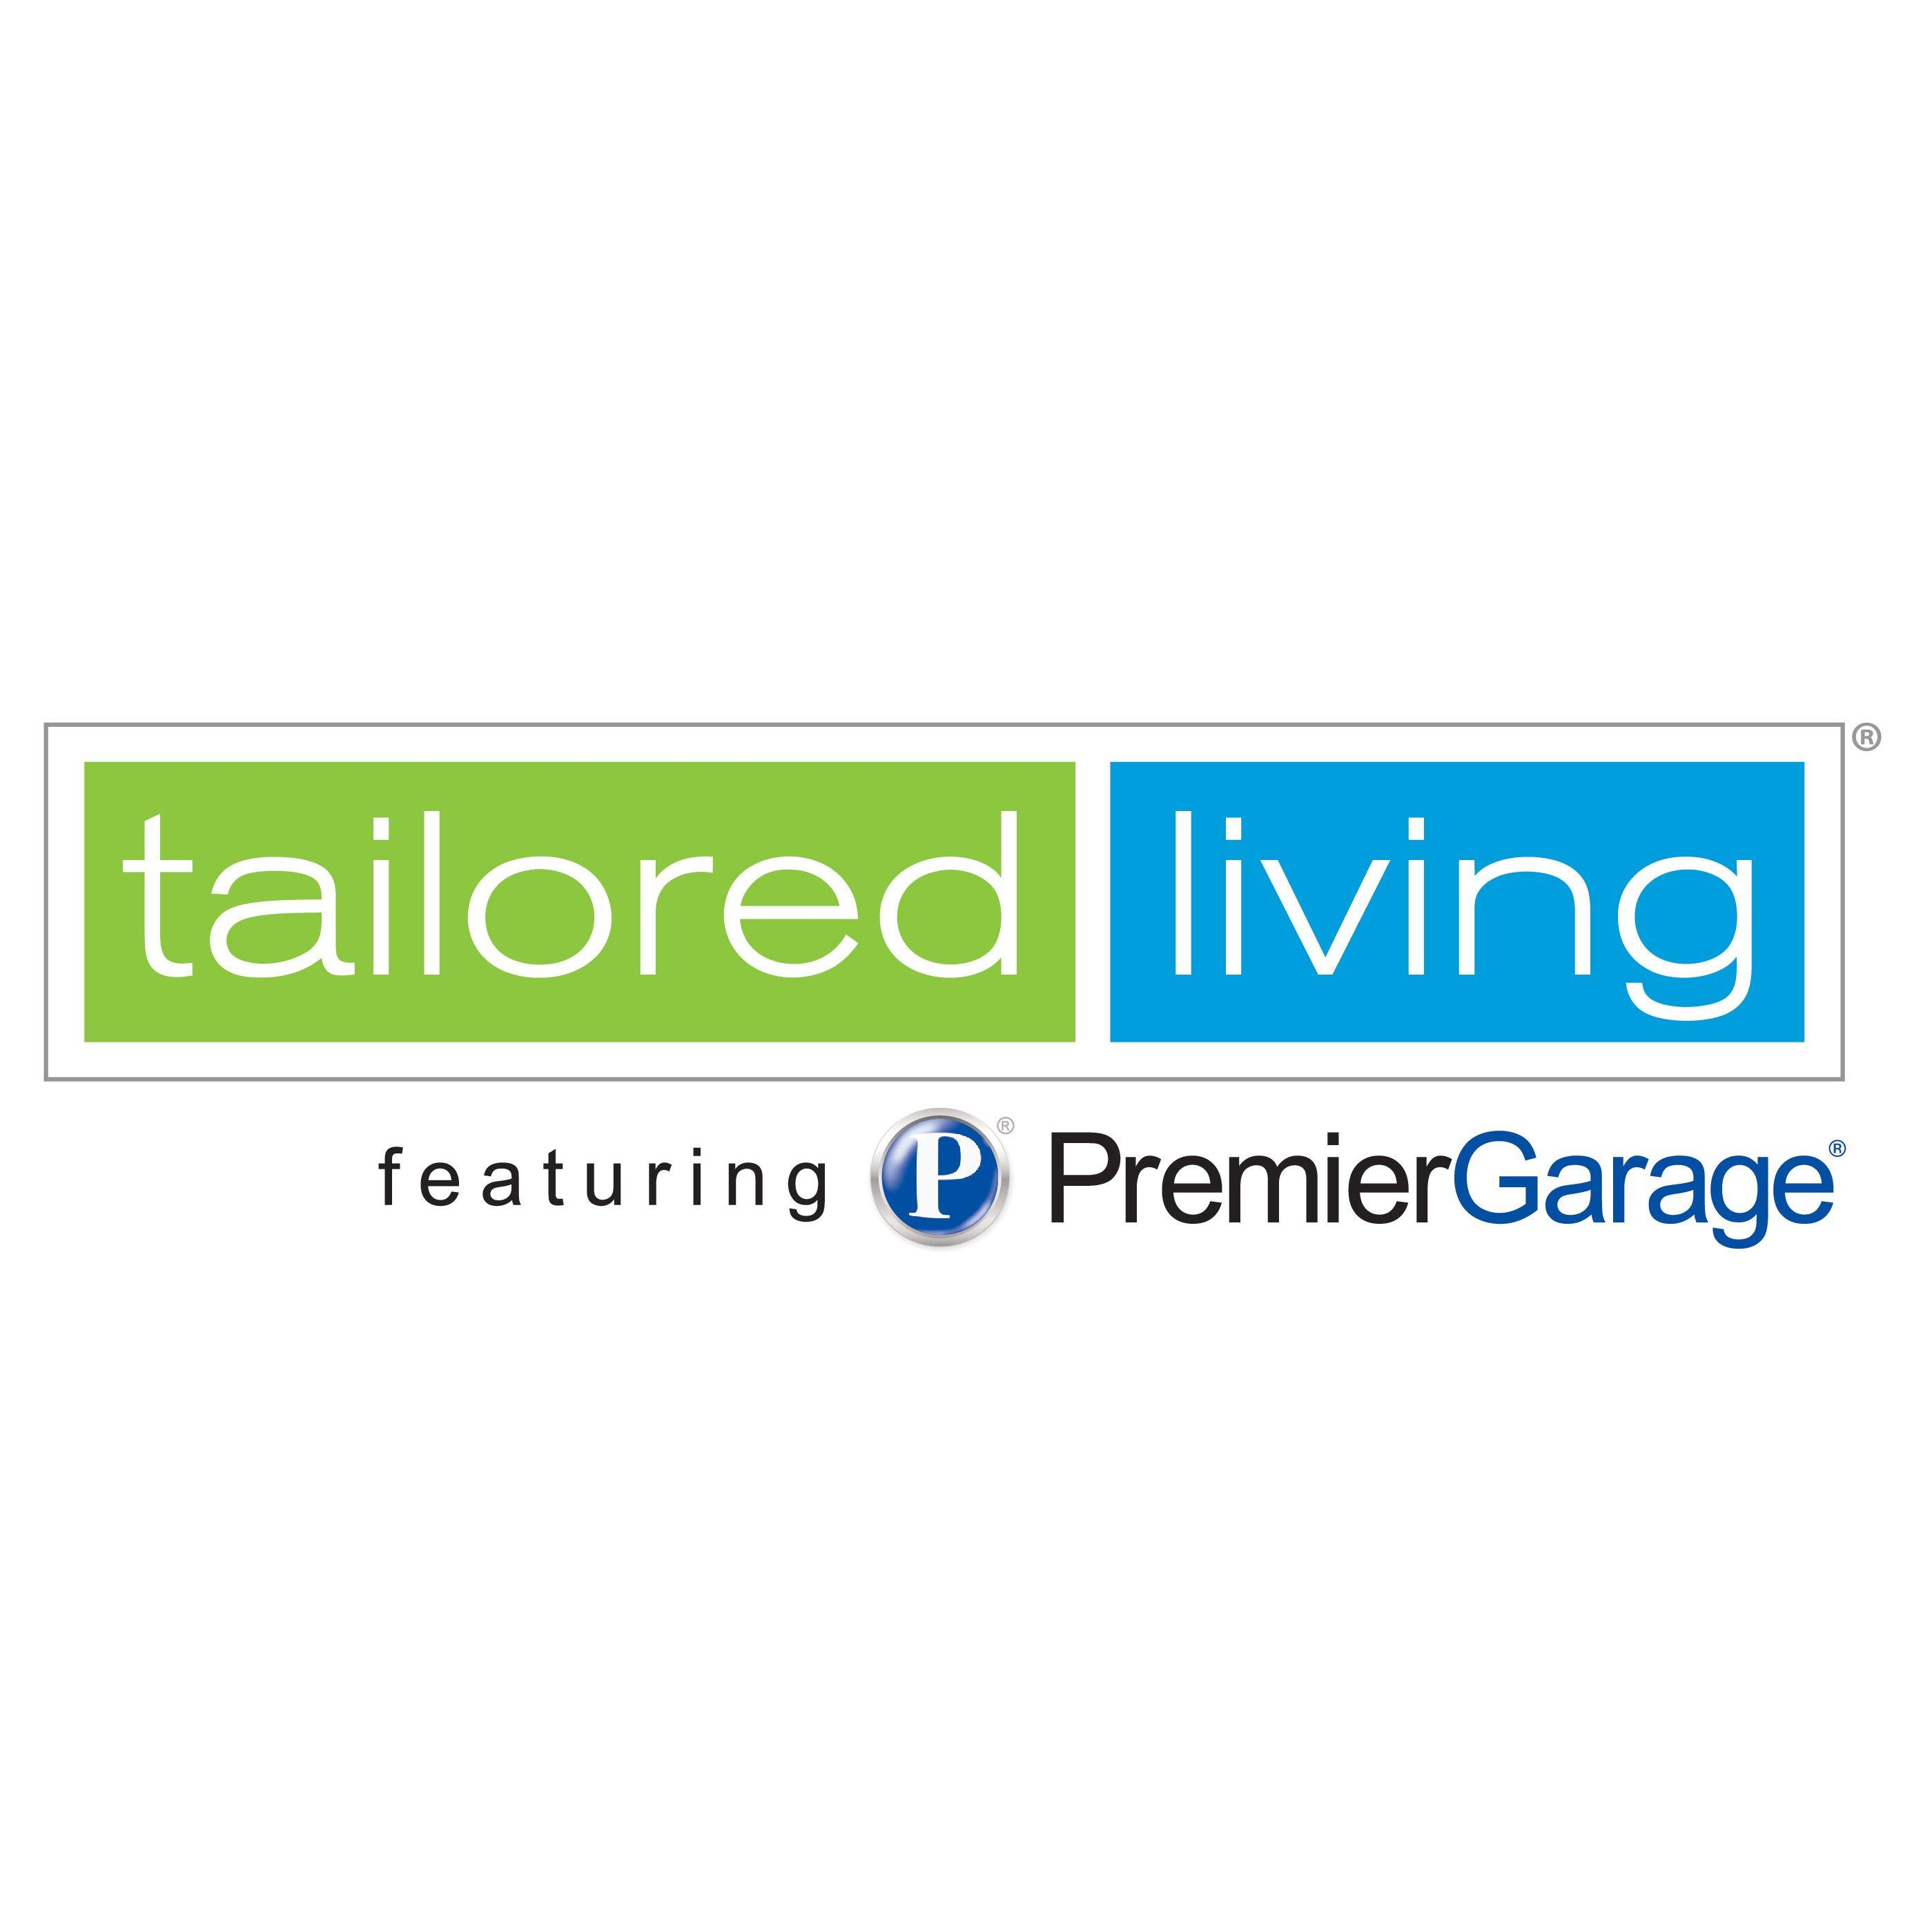 Tailored Living featuring Premier Garage - NH